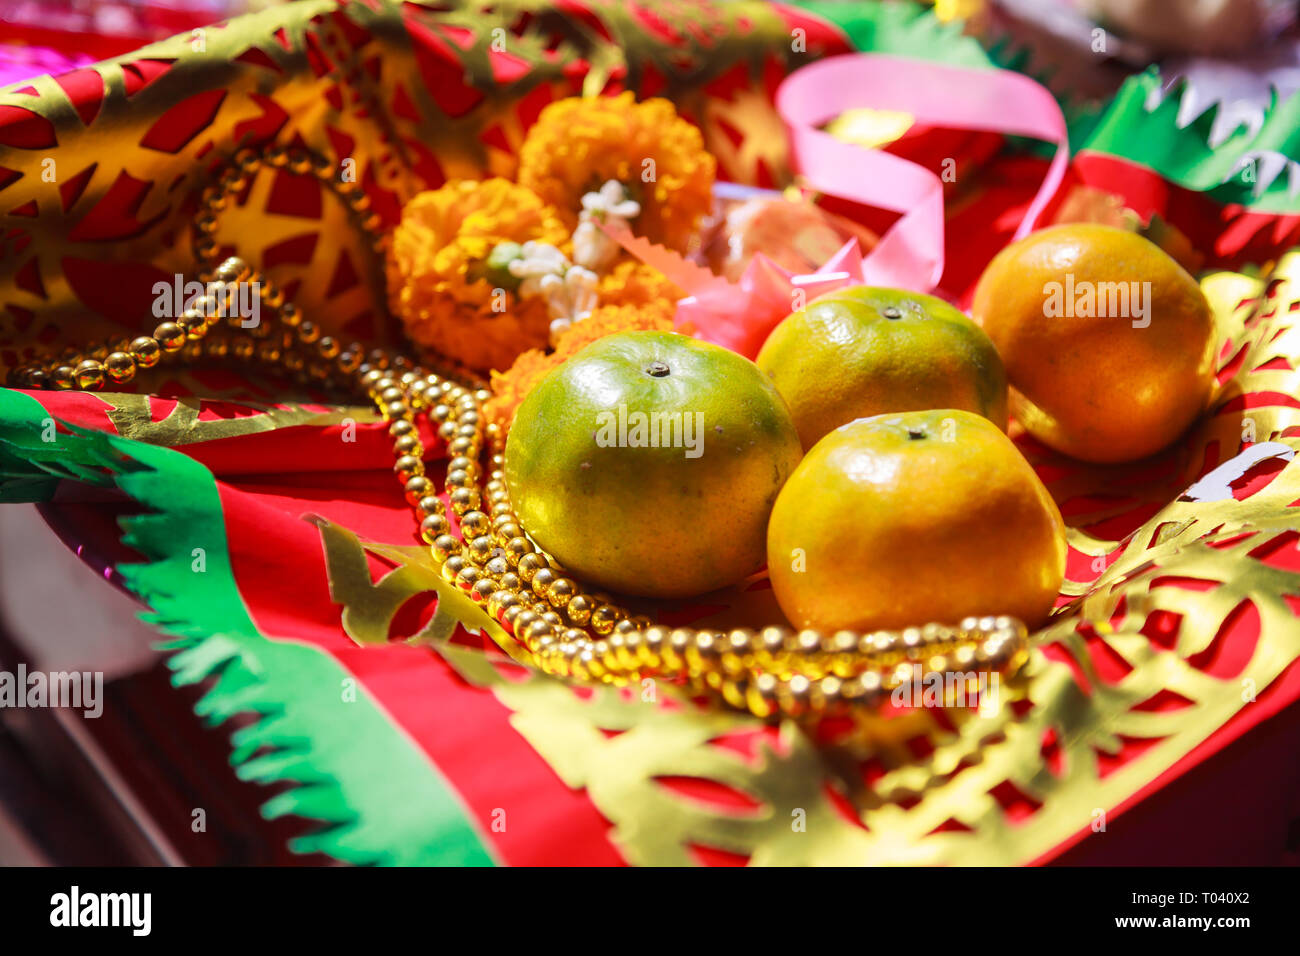 Orange Fruit, Rosary, Flower and Prayer Flag in Chinese Buddhist Temple, material offerings of traditional Mahayana Buddhist devotional practices for  - Stock Image